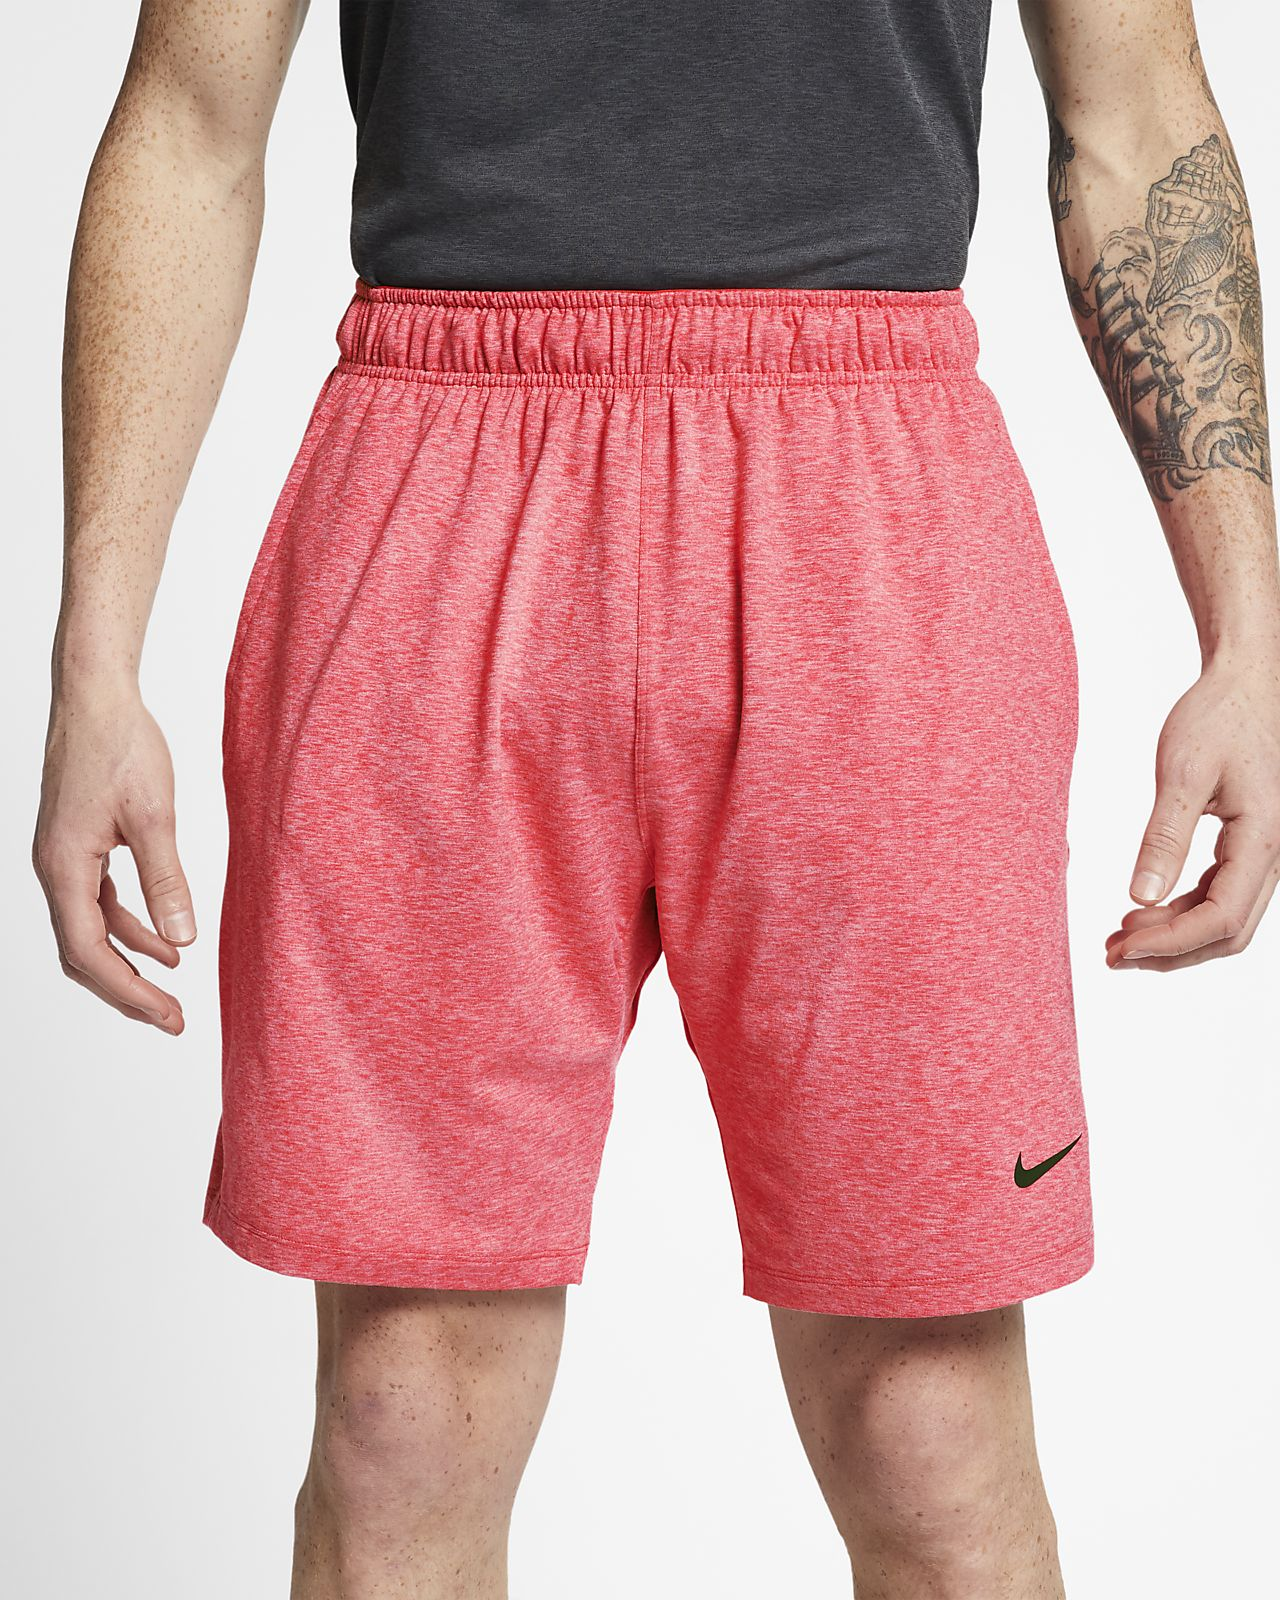 0d7666f2 Nike Dri-FIT Men's Yoga Training Shorts